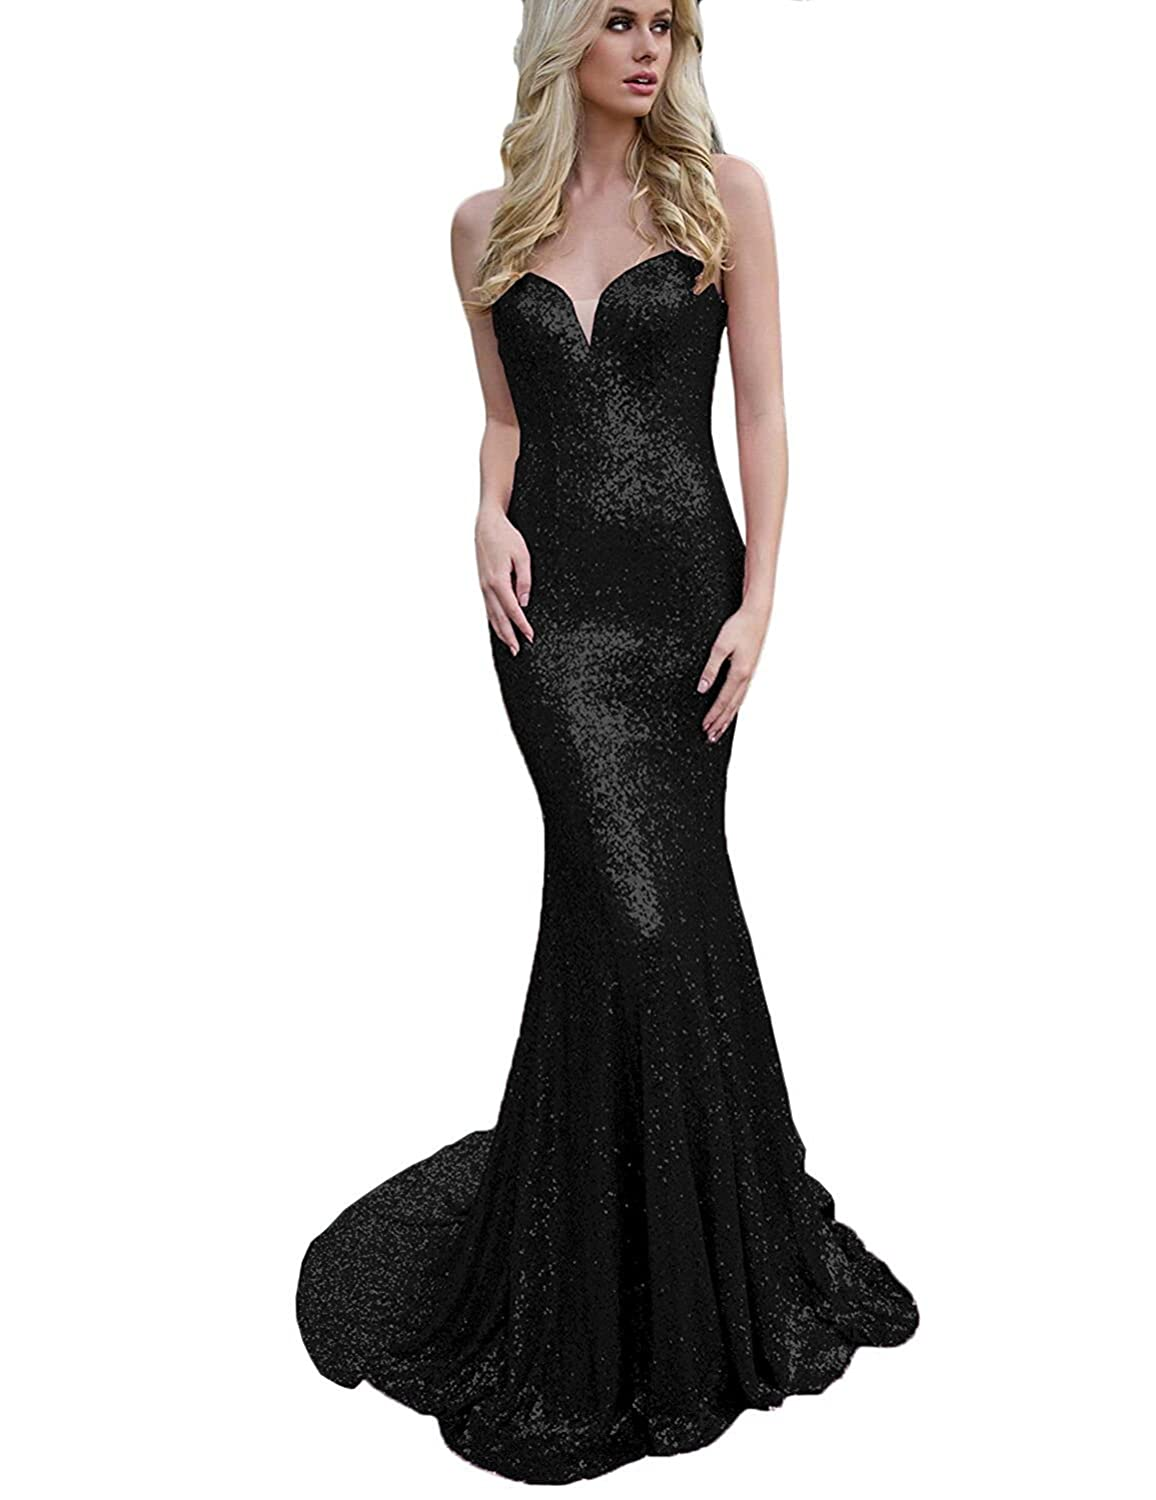 a1beeb1ae6285 MARSEN 2018 Sequin Prom Dress Spaghetti Strap Sweetheart Backless Long Evening  Gown at Amazon Womens Clothing